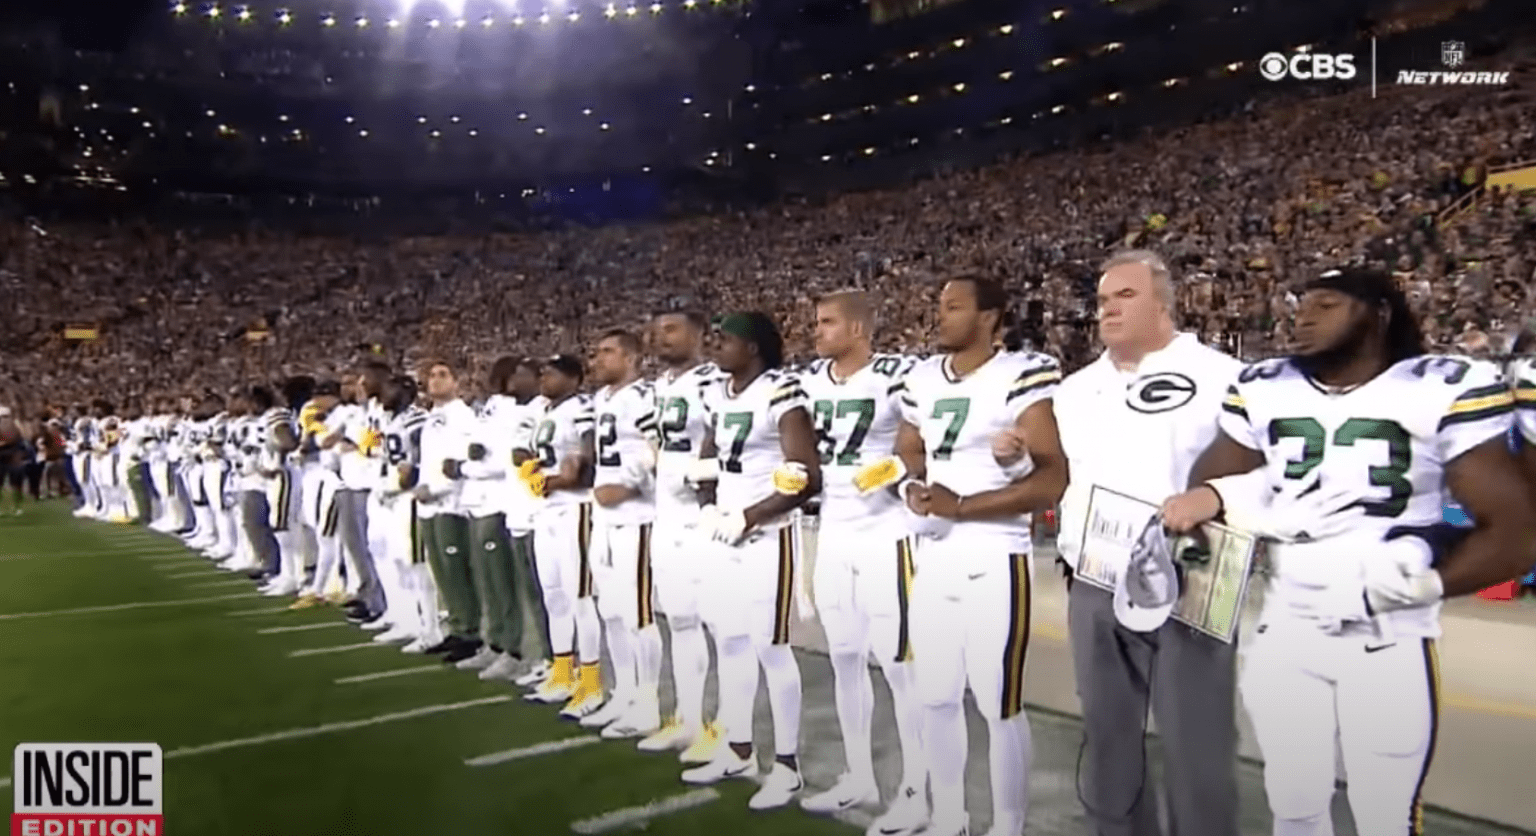 Who needs football? Green Bay Packers to start pushing for voter registration, police body cameras